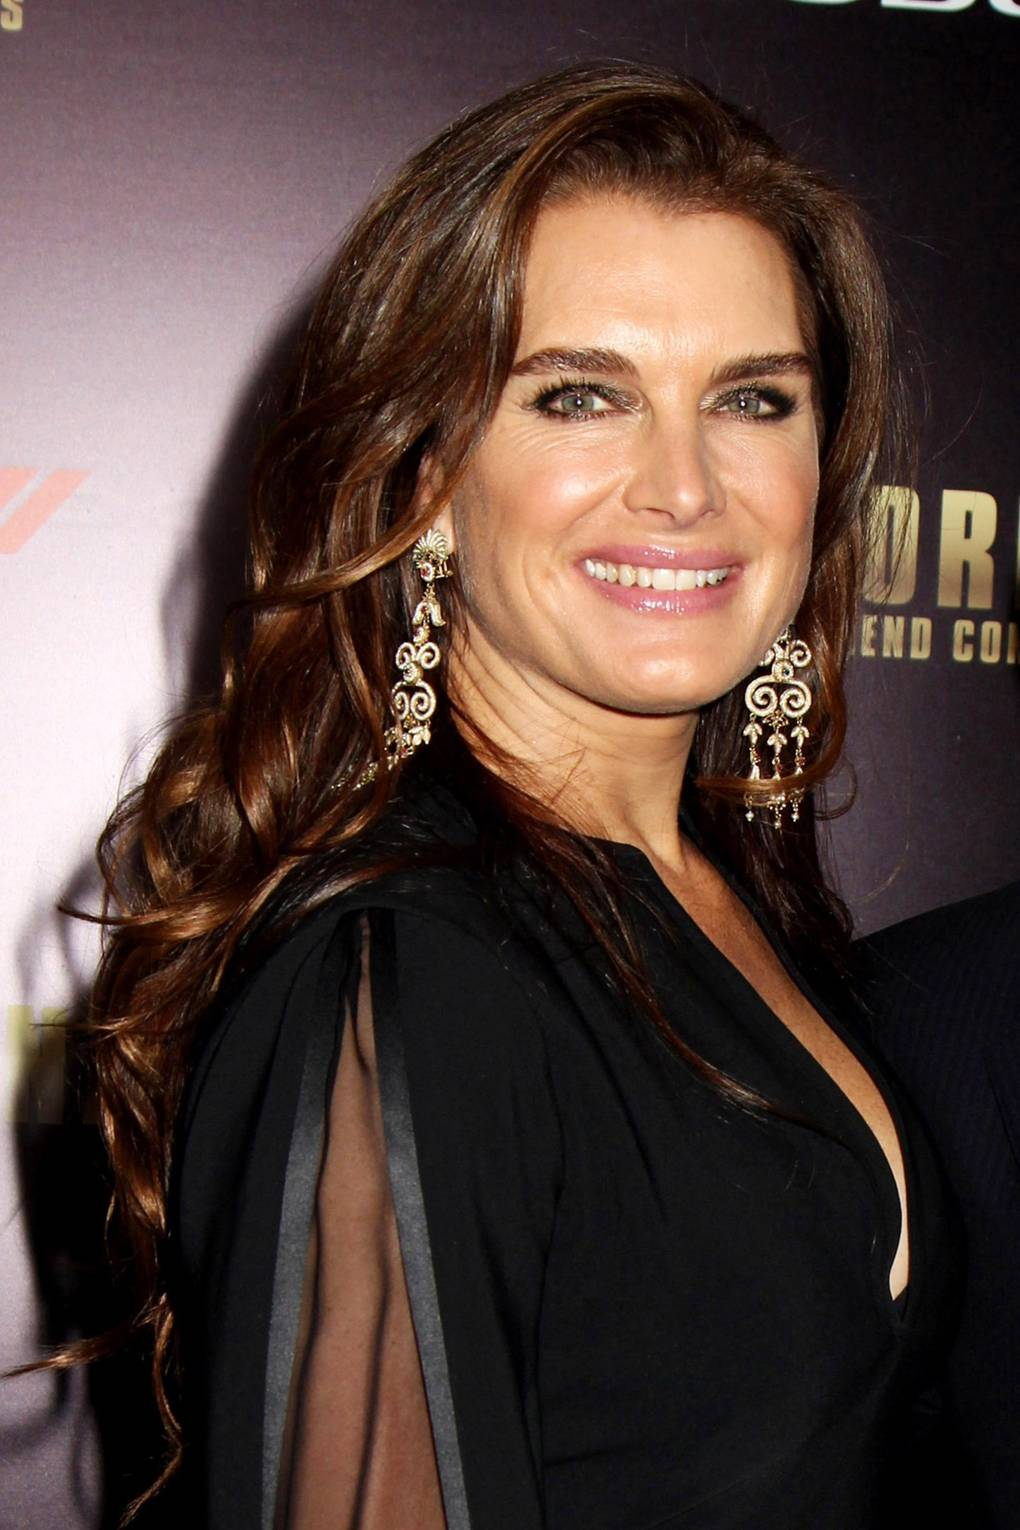 Brooke Shields Mac Cosmetics Collectiion Line Range Glamour Uk